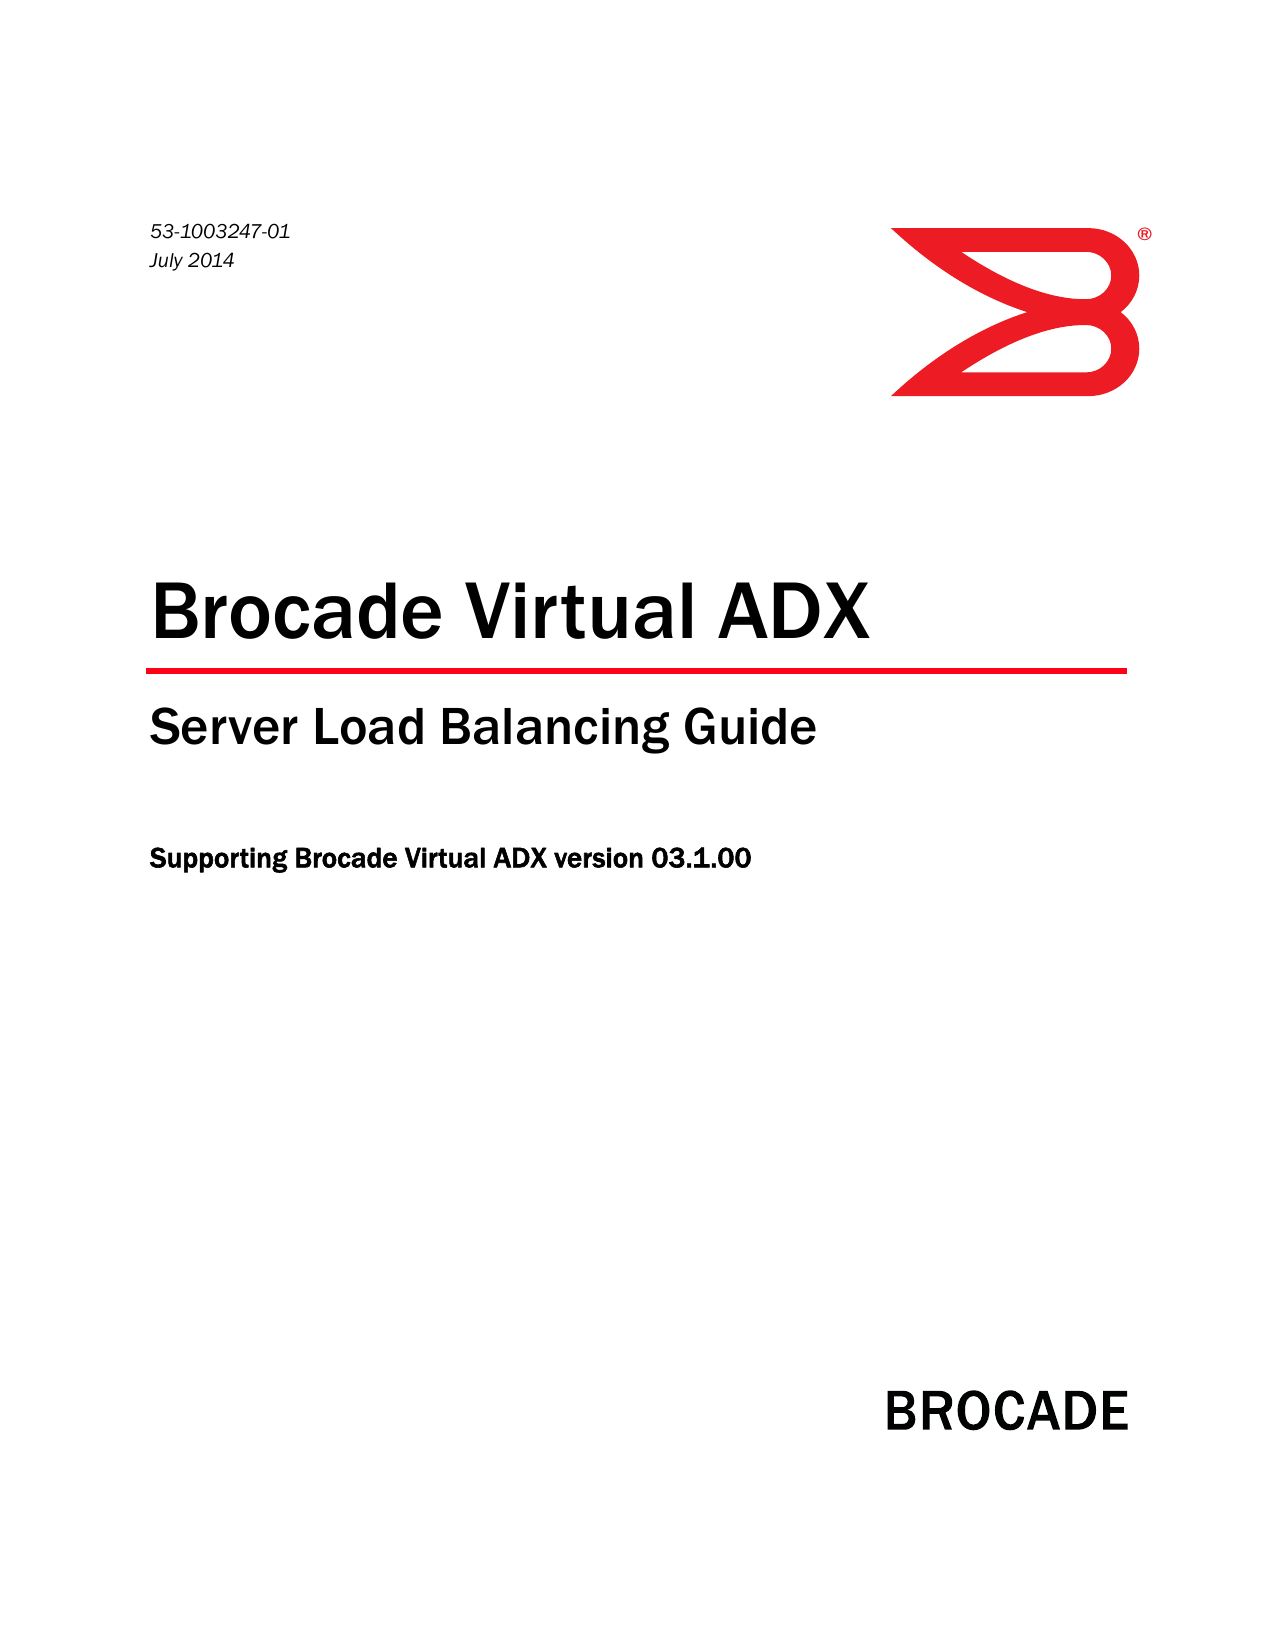 brocade virtual ADX